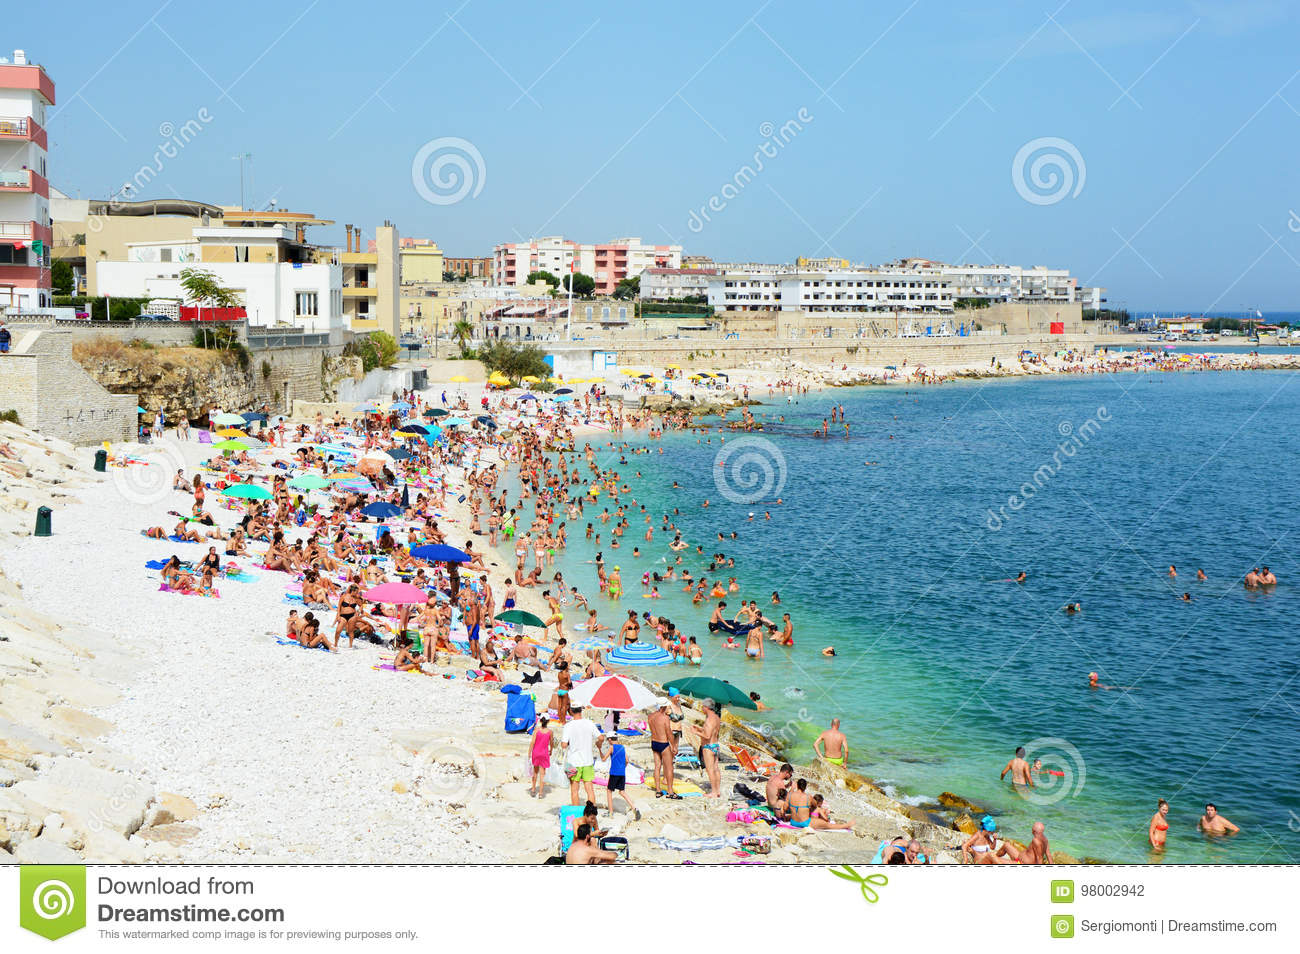 BISCEGLIE, ITALY - AUGUST 3, 2017: Very Crowded Beach Full Of People At The  Mediterranean Sea In Apulia Turist Region, Bisceglie Editorial Photography  - Image of resort, city: 98002942